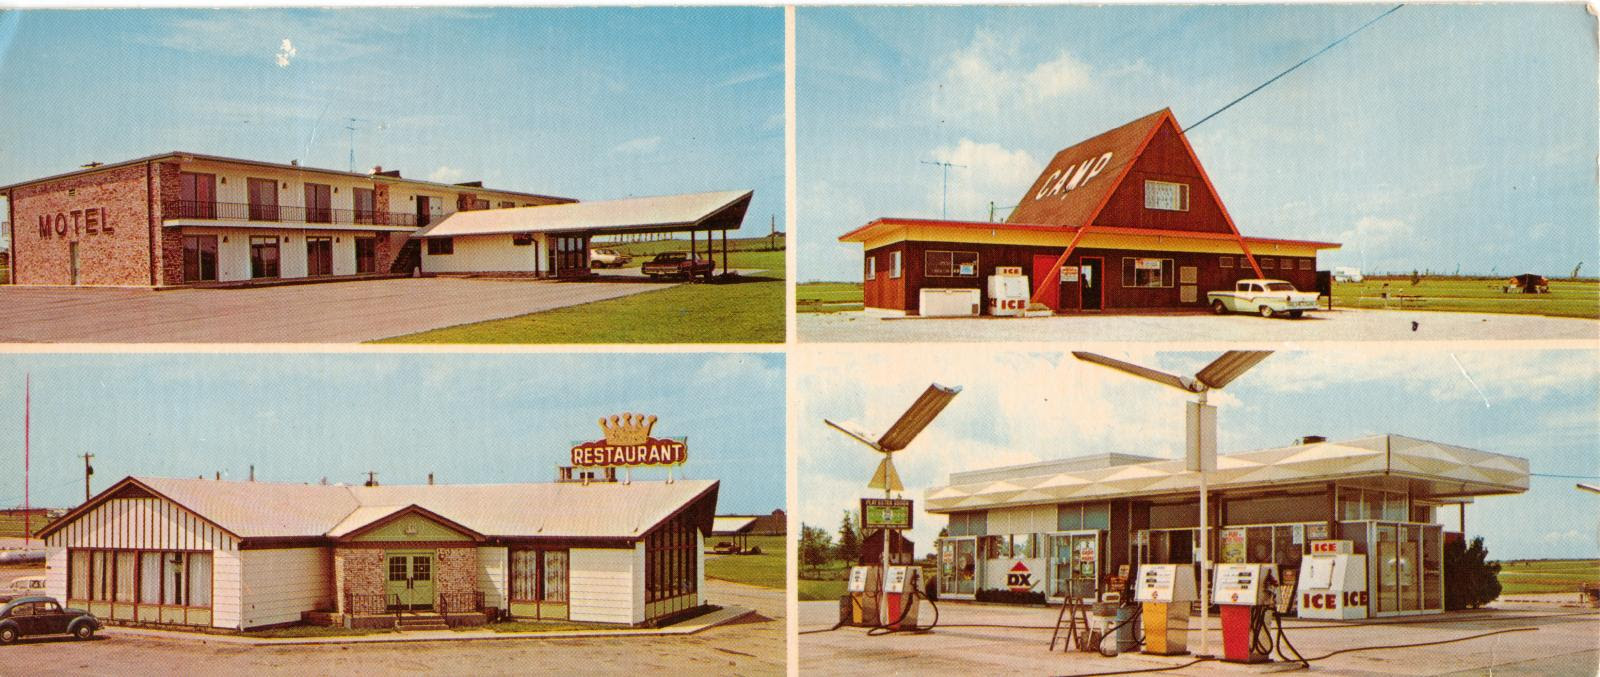 Iowa route 80 postcard 1972 road trip americana